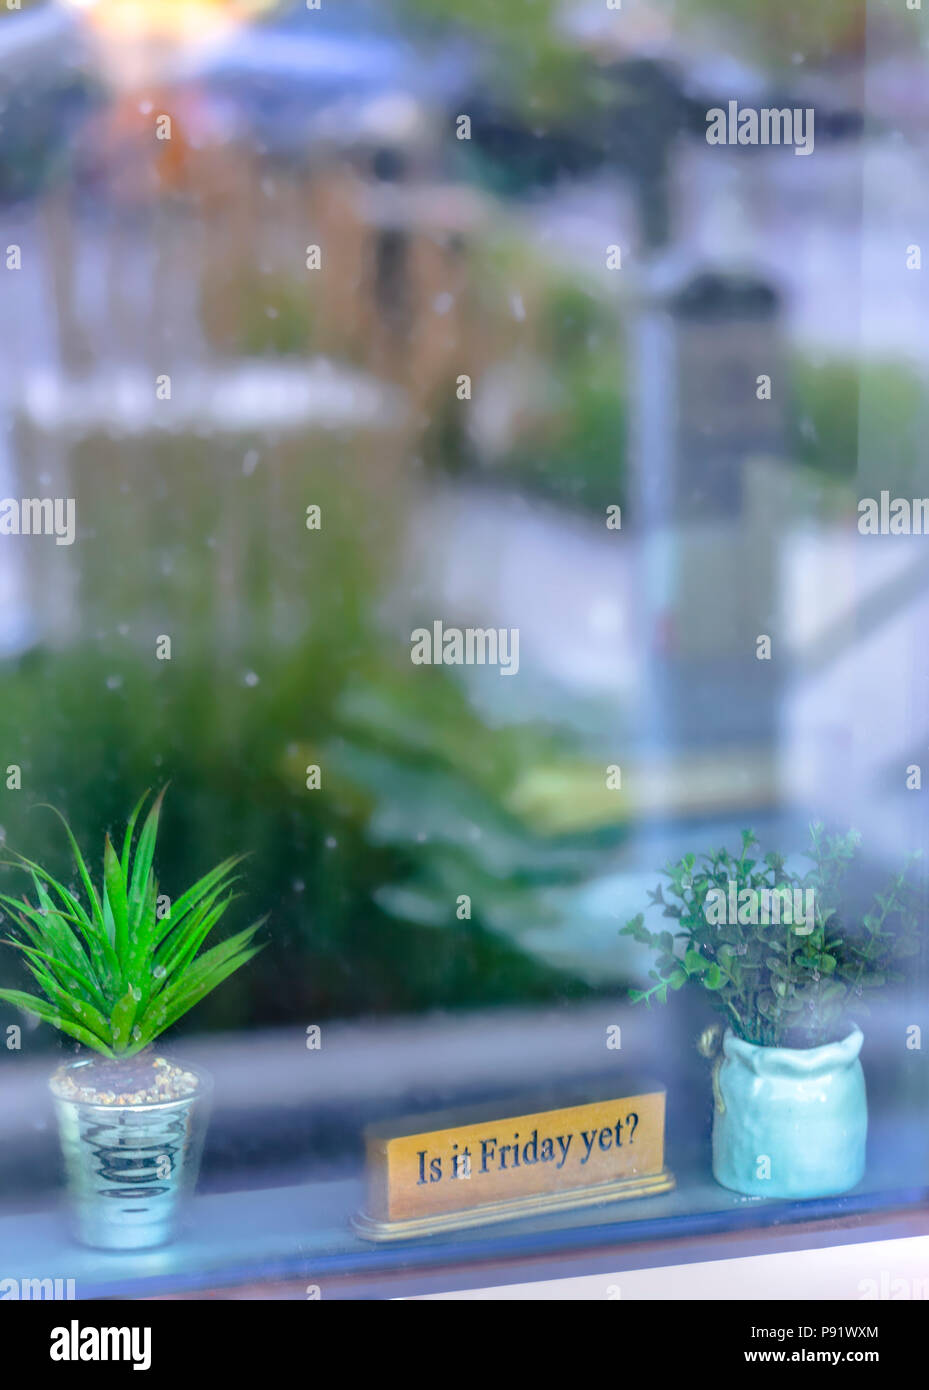 Is it friday yet sign in window of exterior - Stock Image